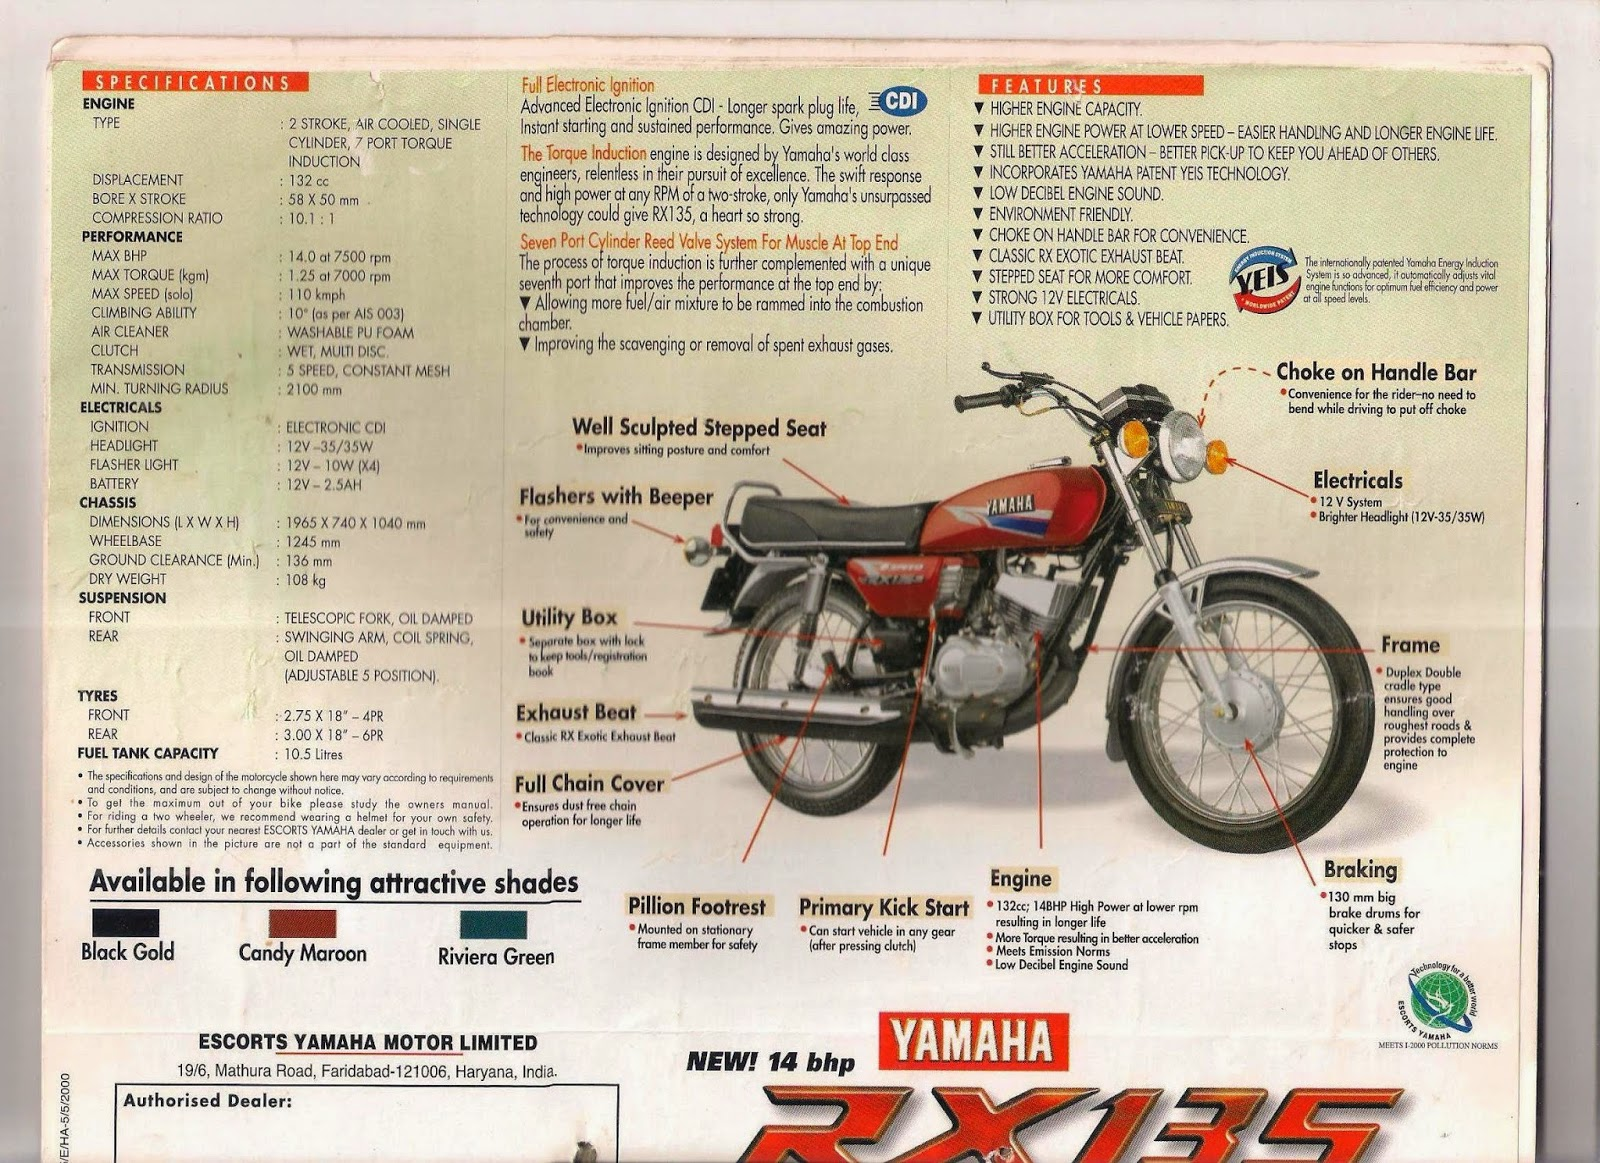 Yamaha rxz manual various owner manual guide manual yamaha rxz 135 free owners manual u2022 rh wordworksbysea com yamaha rx 100 manual yamaha rxz manual asfbconference2016 Image collections